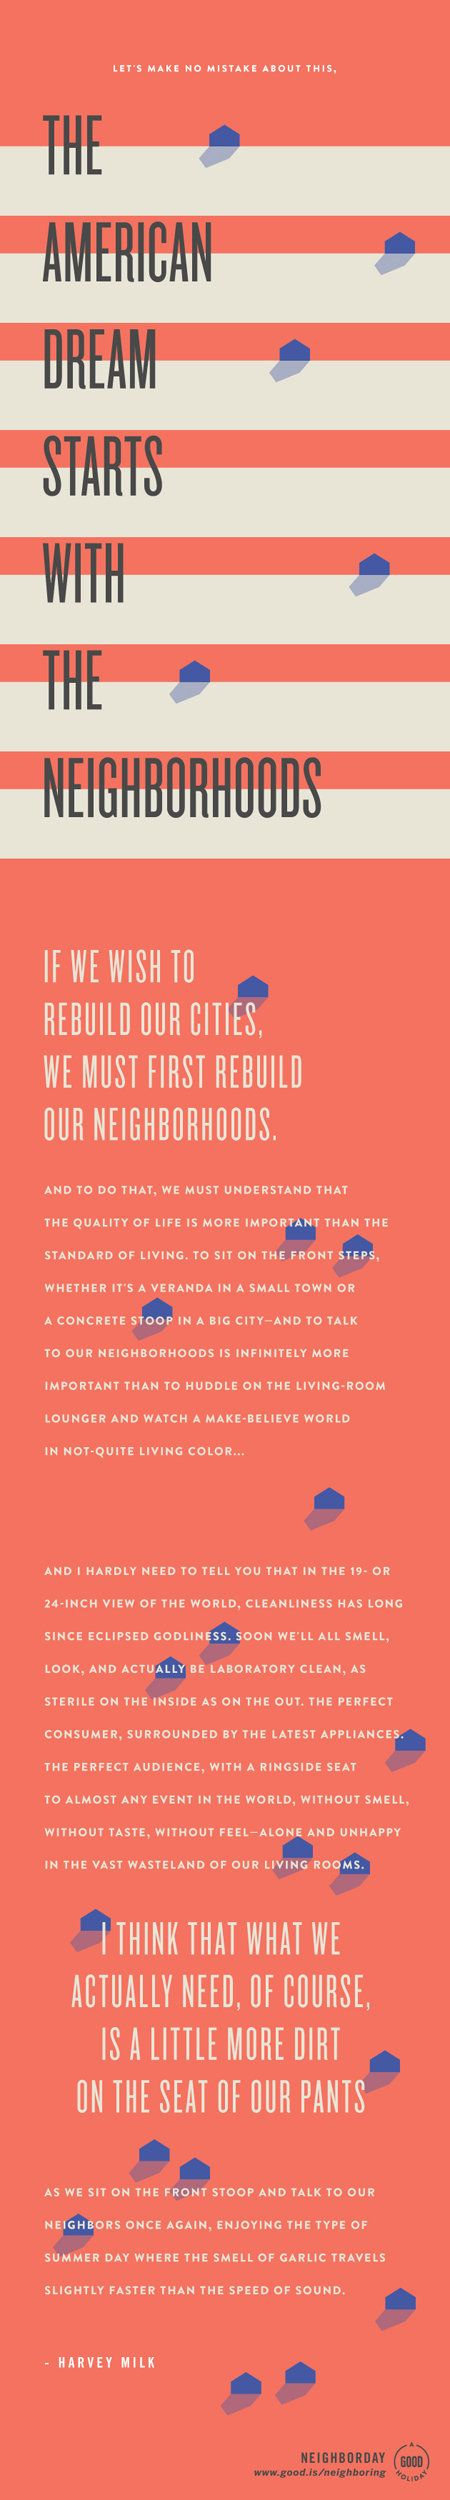 """Let's make no mistake about this: The American Dream starts with the neighborhoods. If we wish to rebuild our cities, we must first rebuild our neighborhoods. And to do that, we must understand that the quality of life is more important than the standard of living."" ― Harvey Milk"